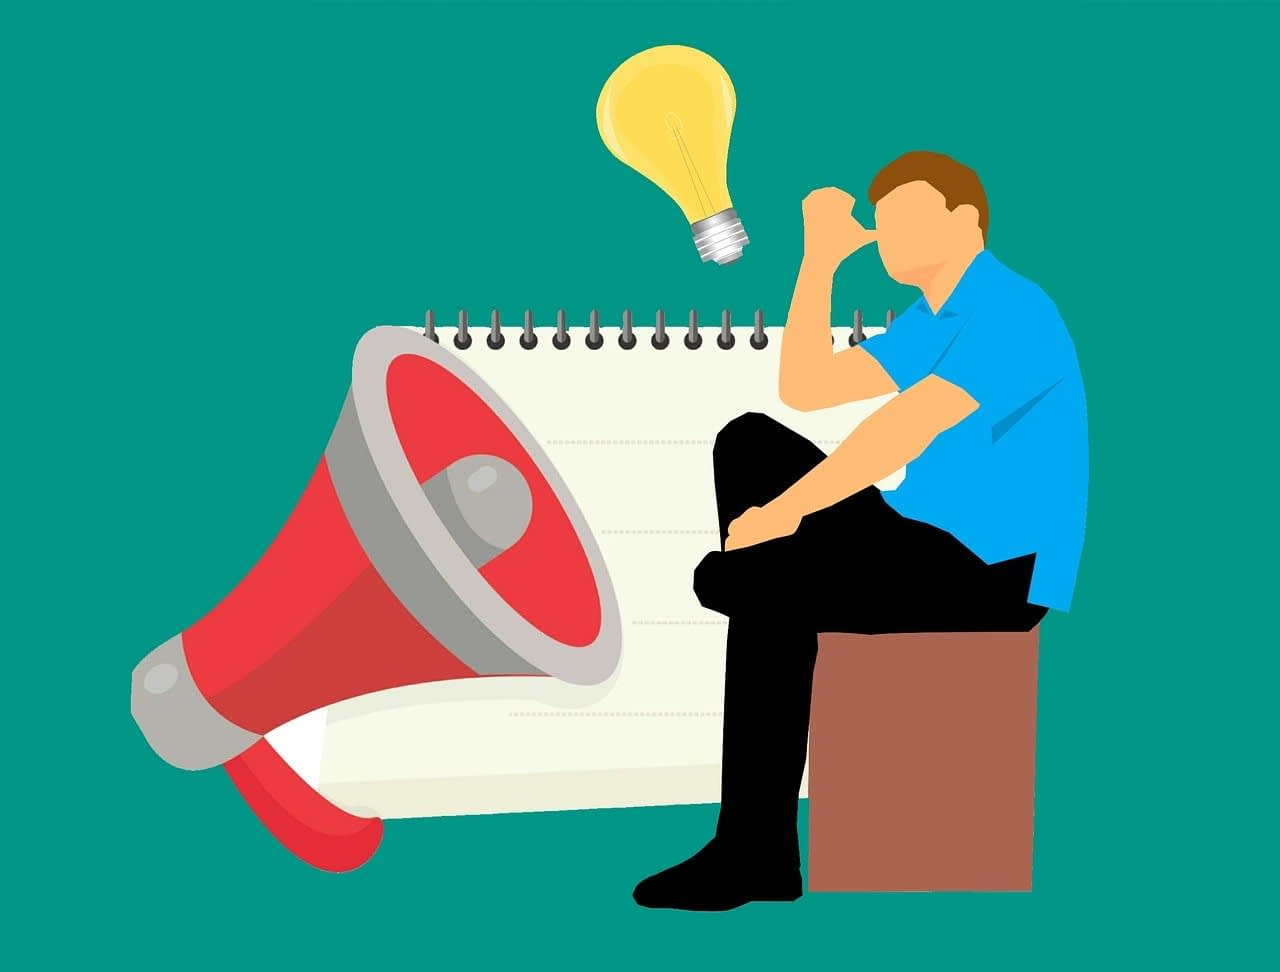 a sketch of a person with a megaphone and a notepad and a lightbulb as if he is trying to think of something to say